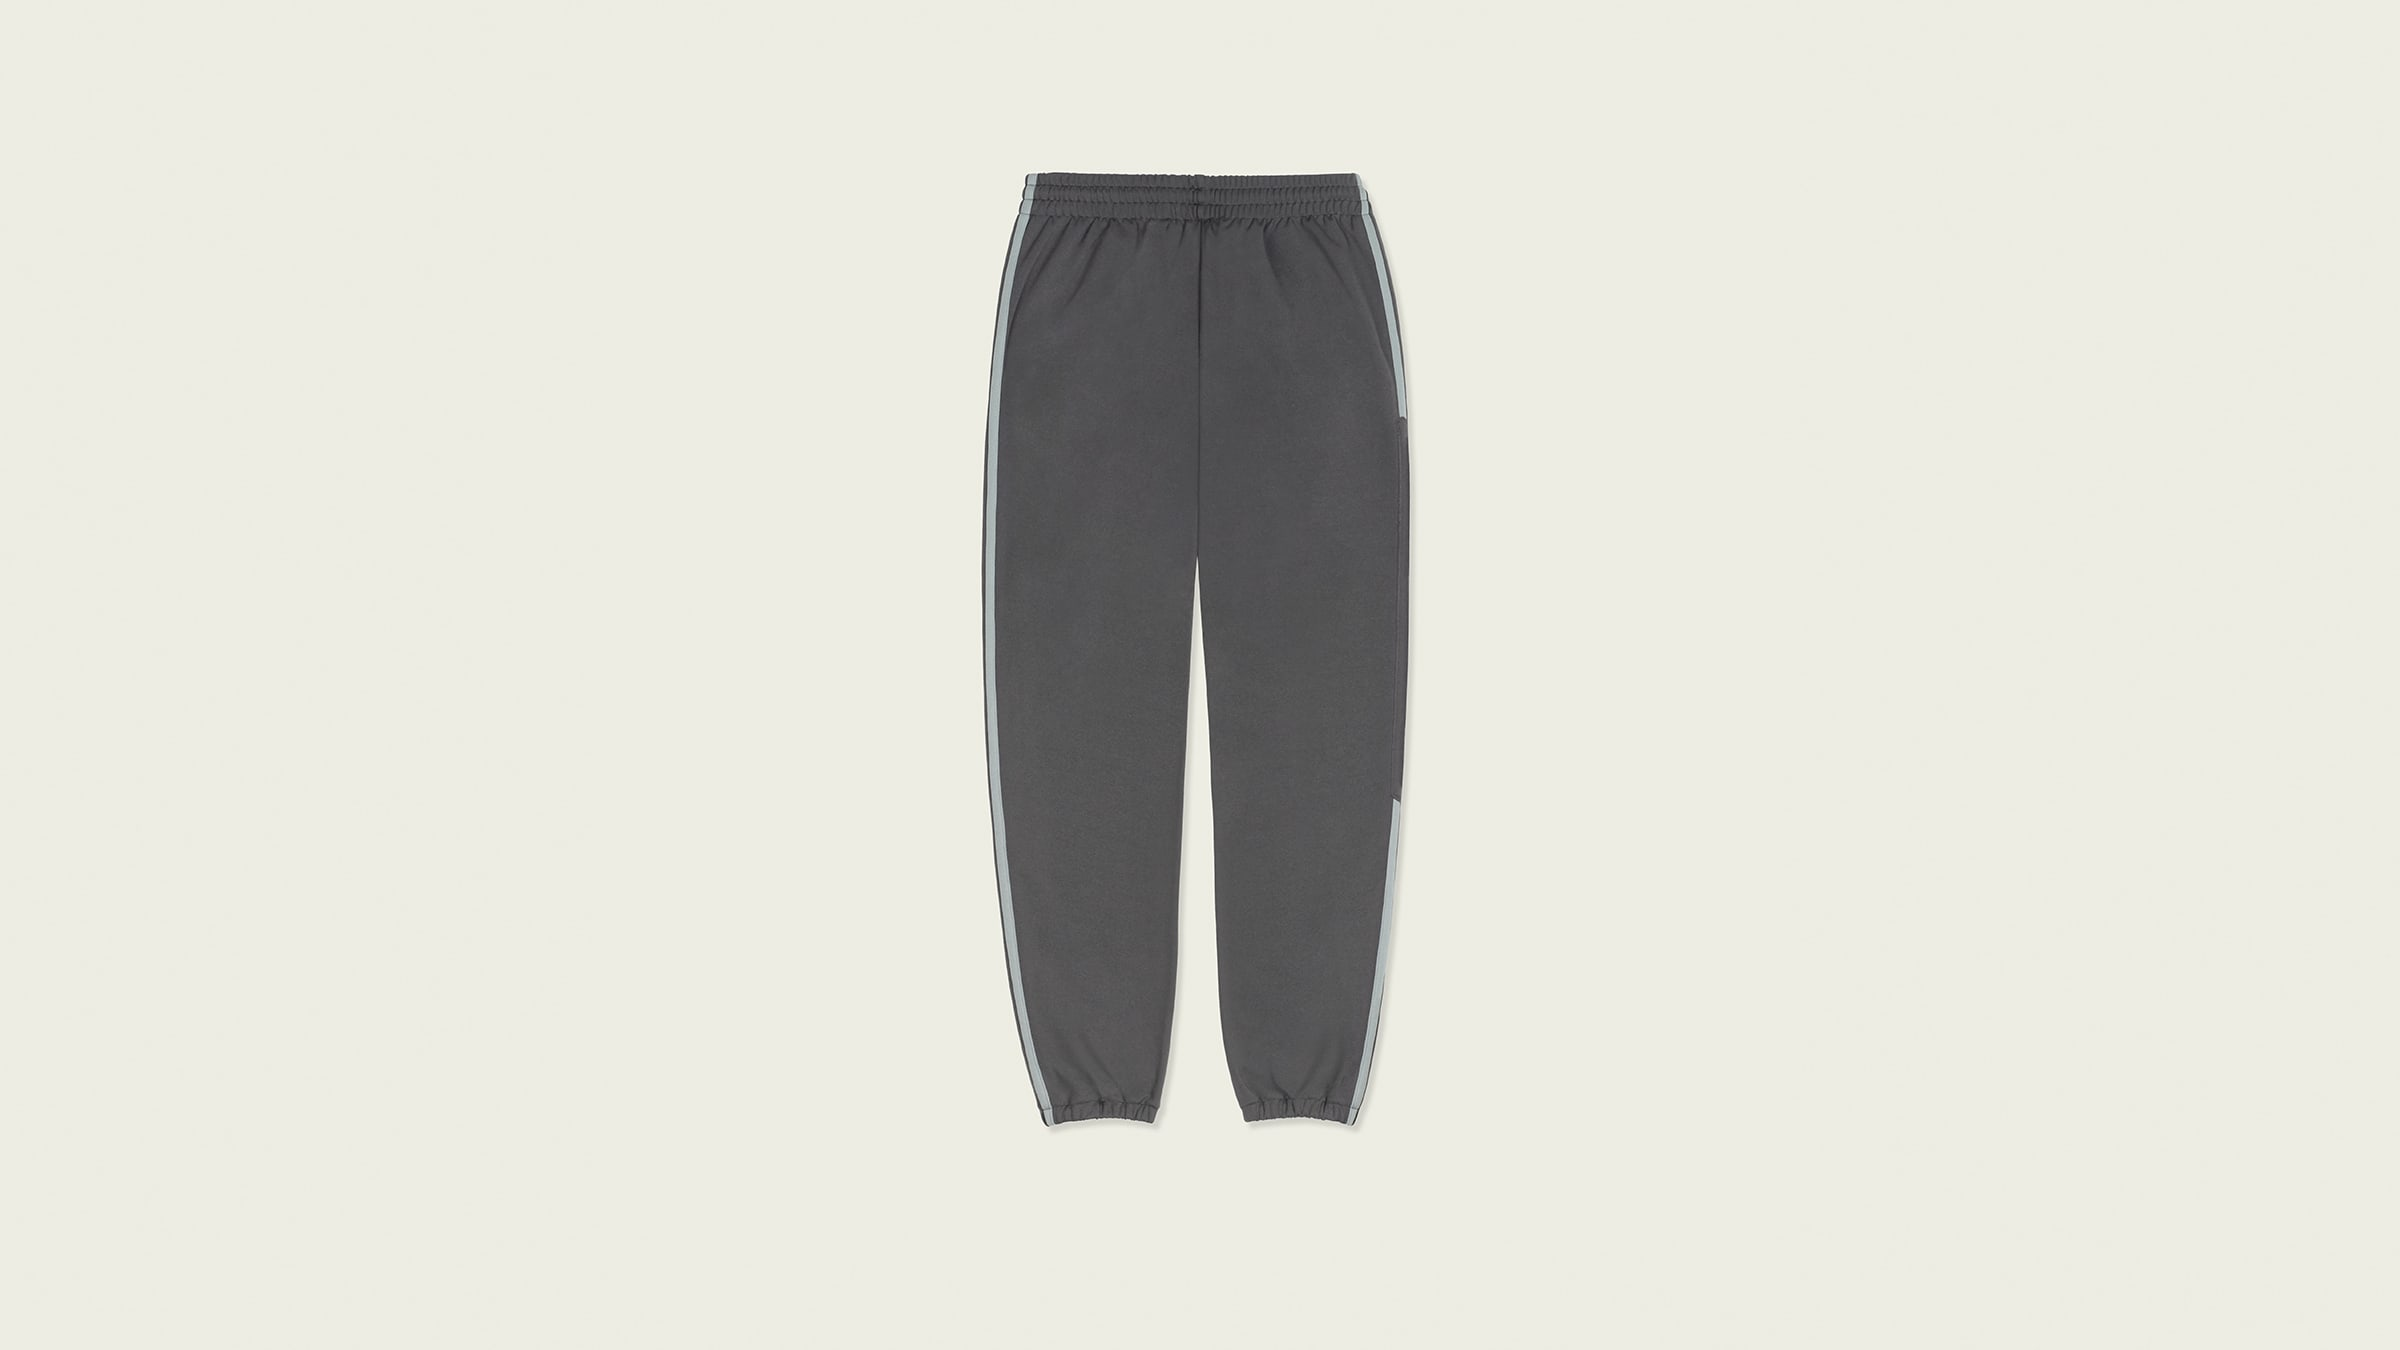 31af59caf Adidas Yeezy Calabasas Track Pant. Ink£99. Representing the west coast with  a Yeezy state of mind ...